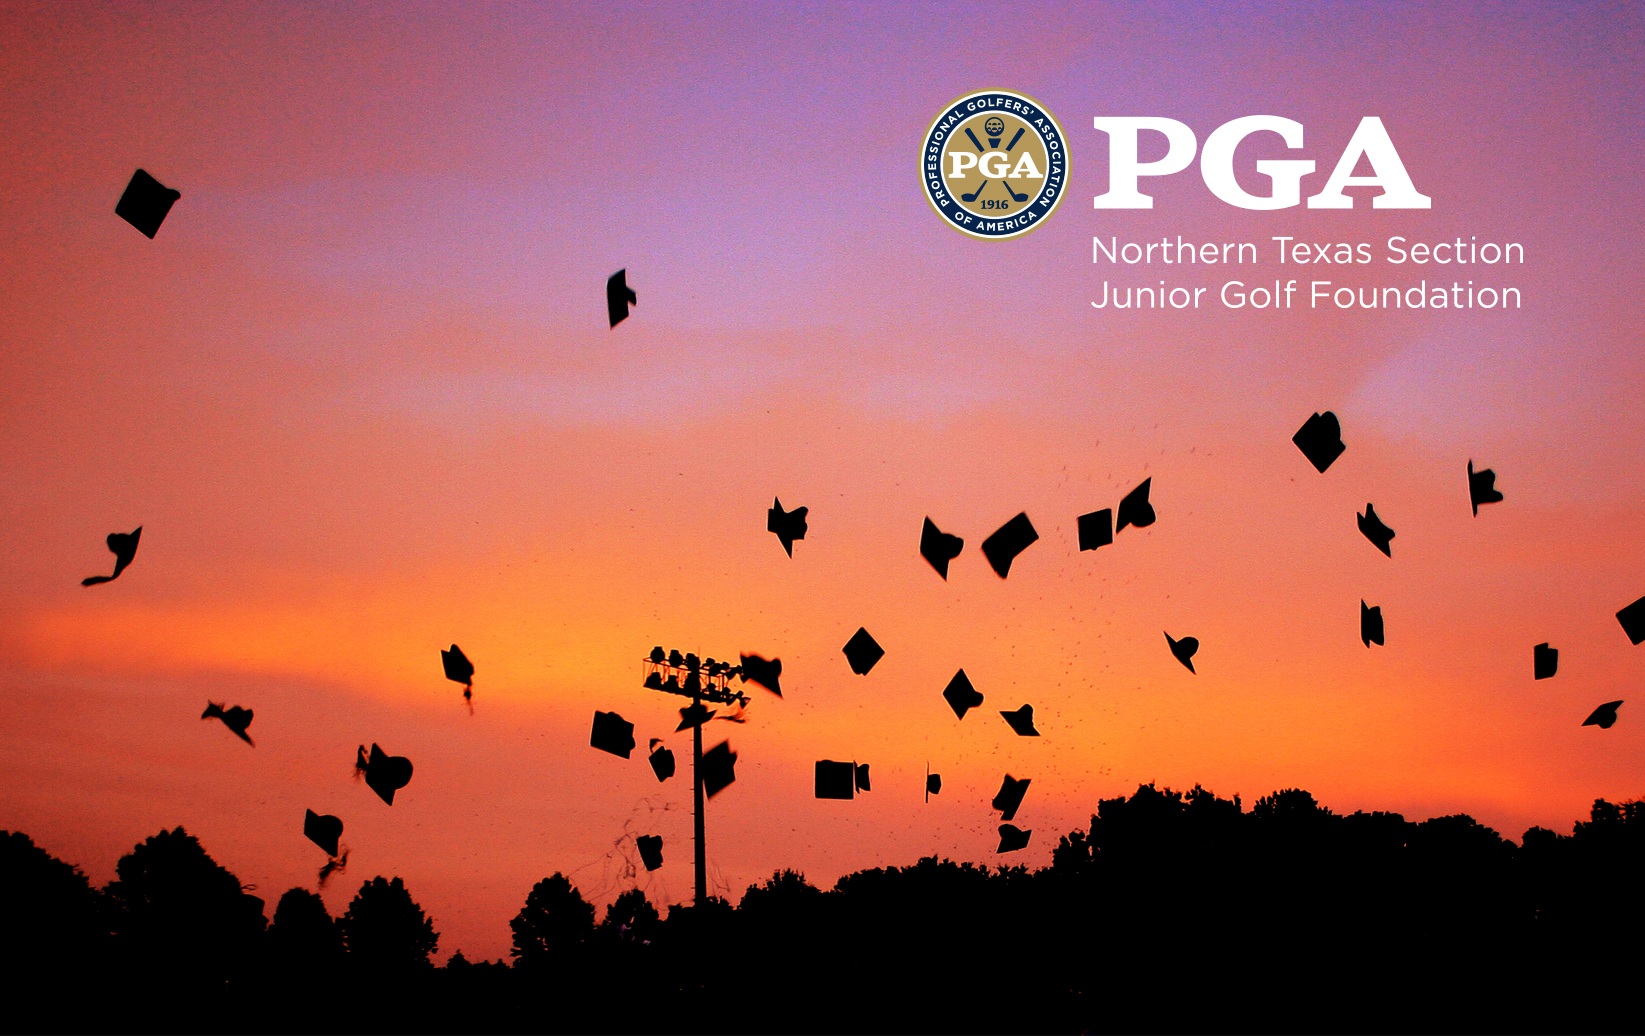 Northern Texas PGA Junior Golf Foundation Awards A Record $265,000 in Scholarships